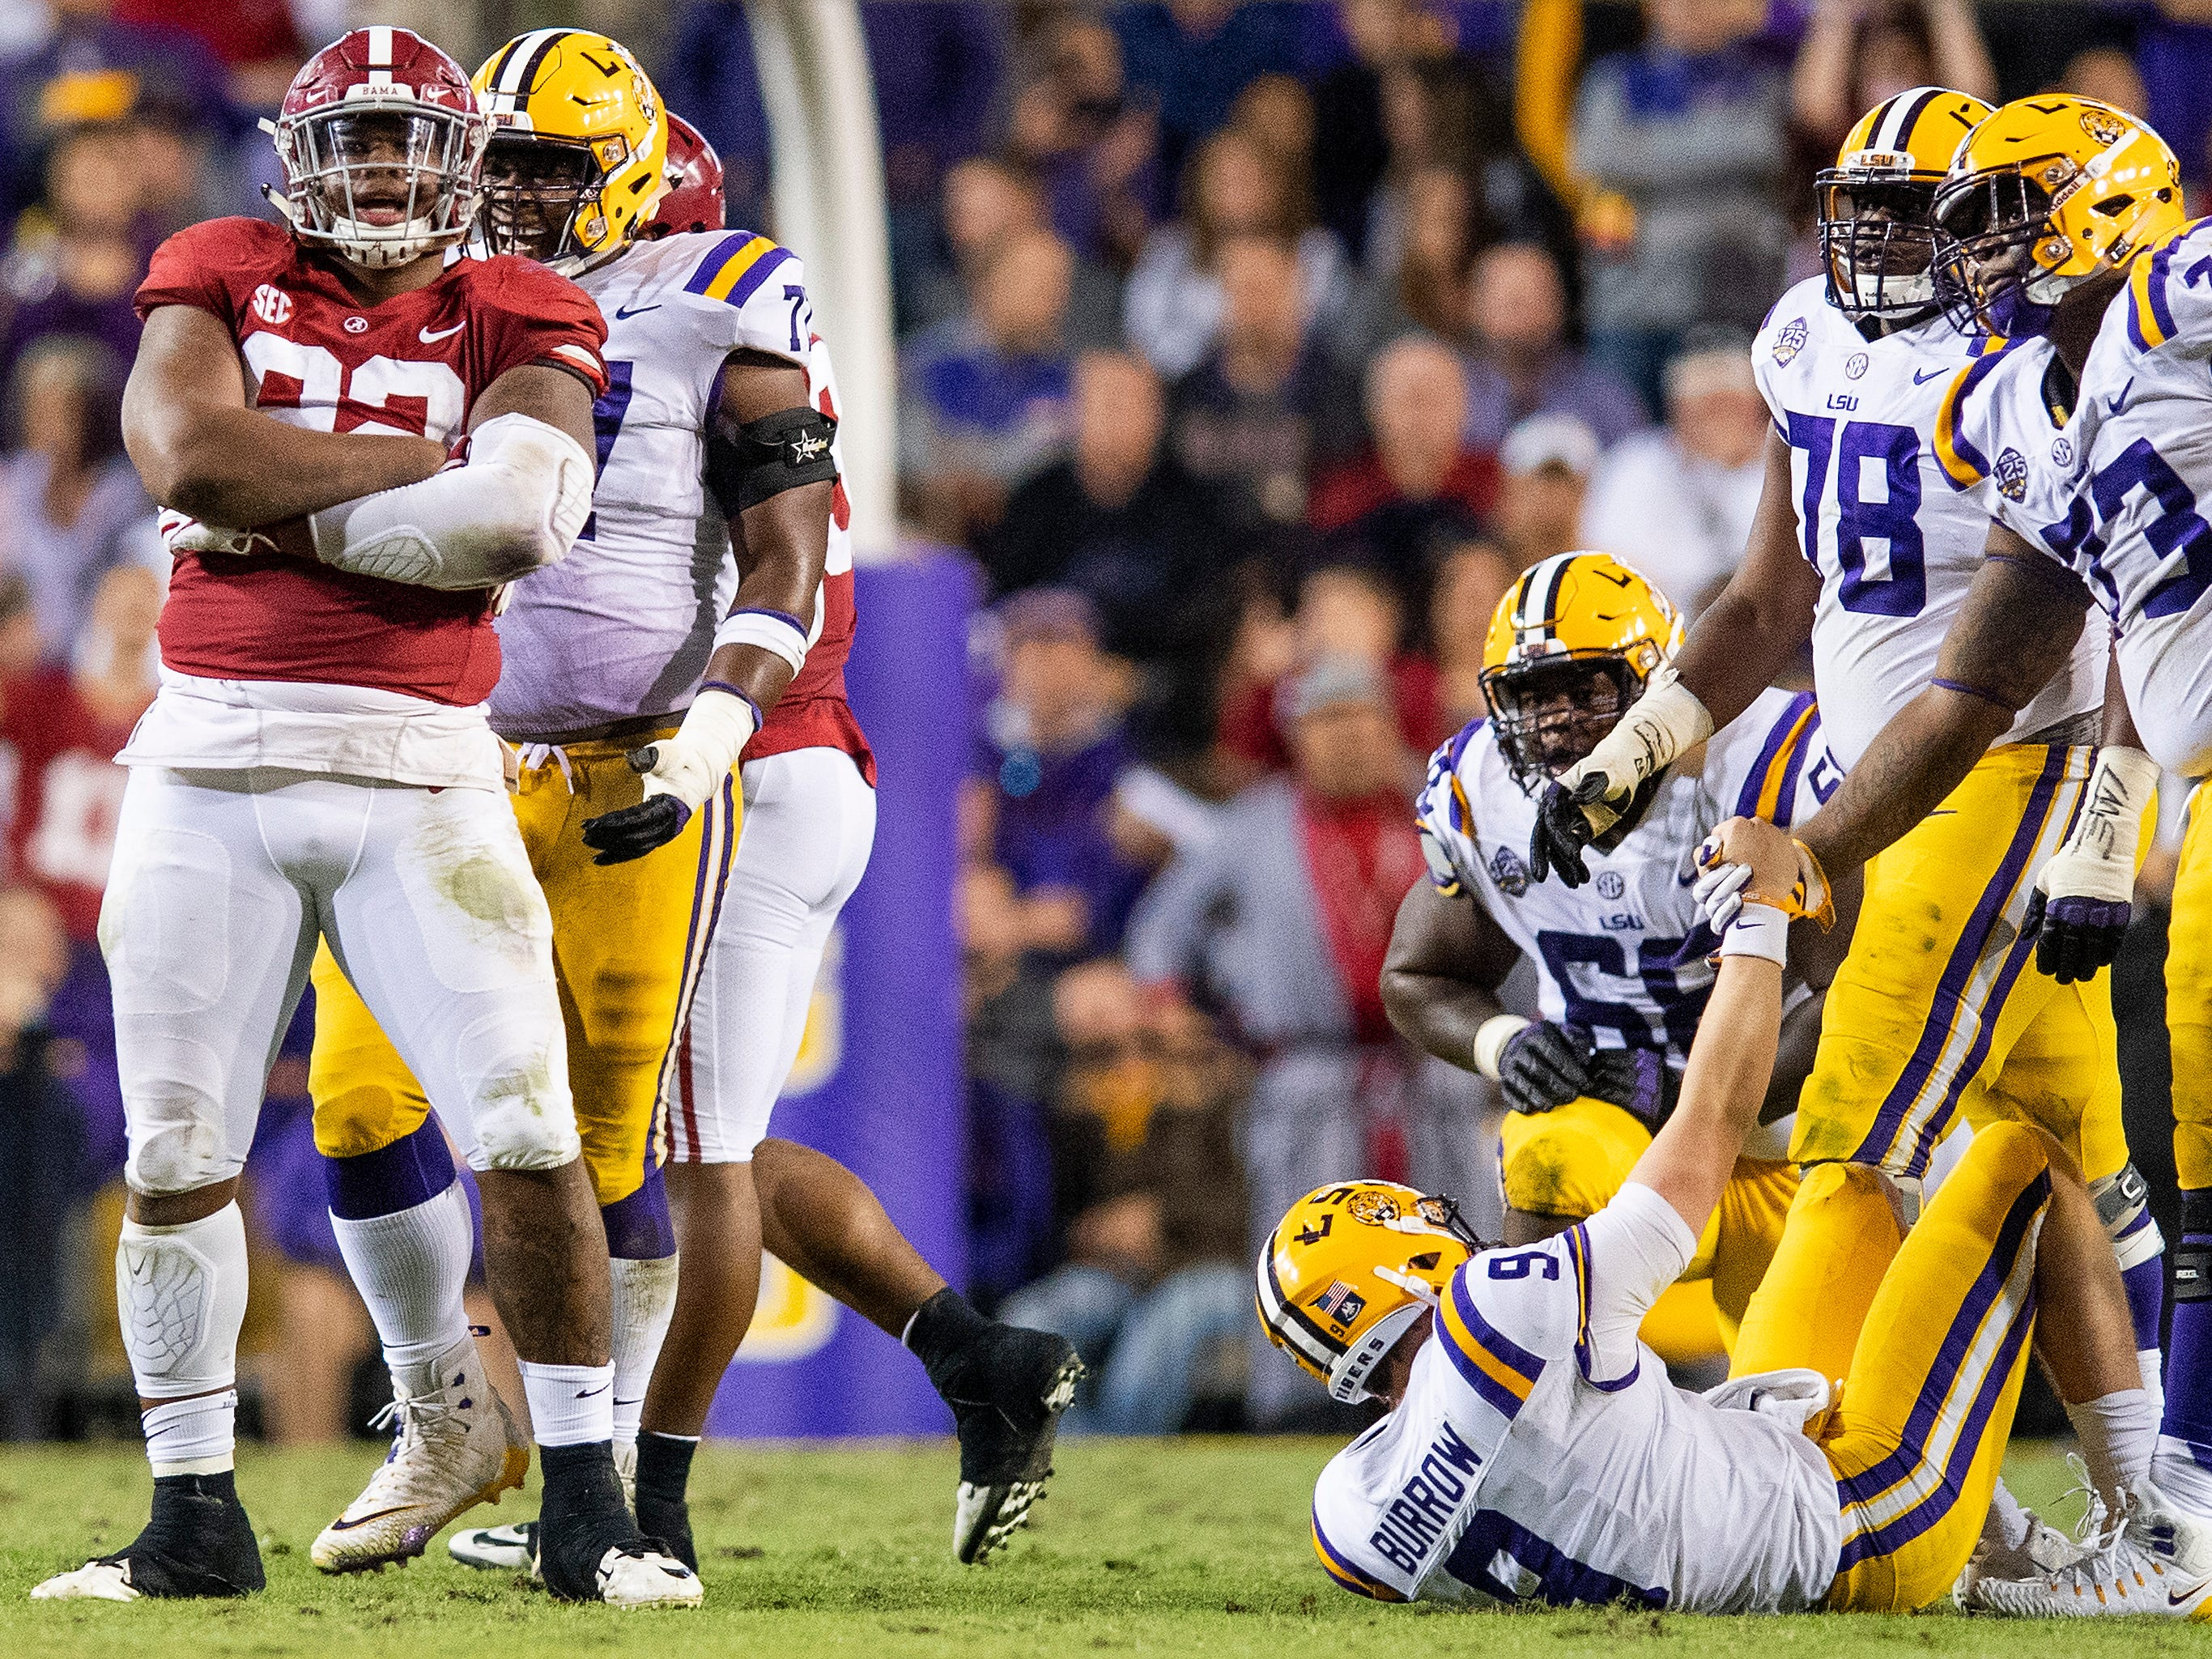 Alabama defensive lineman Quinnen Williams (92) after sacking Louisiana State University quarterback Joe Burrow (9) in second half action at Tiger Stadium in Baton Rouge, La., on Saturday November 3, 2018.